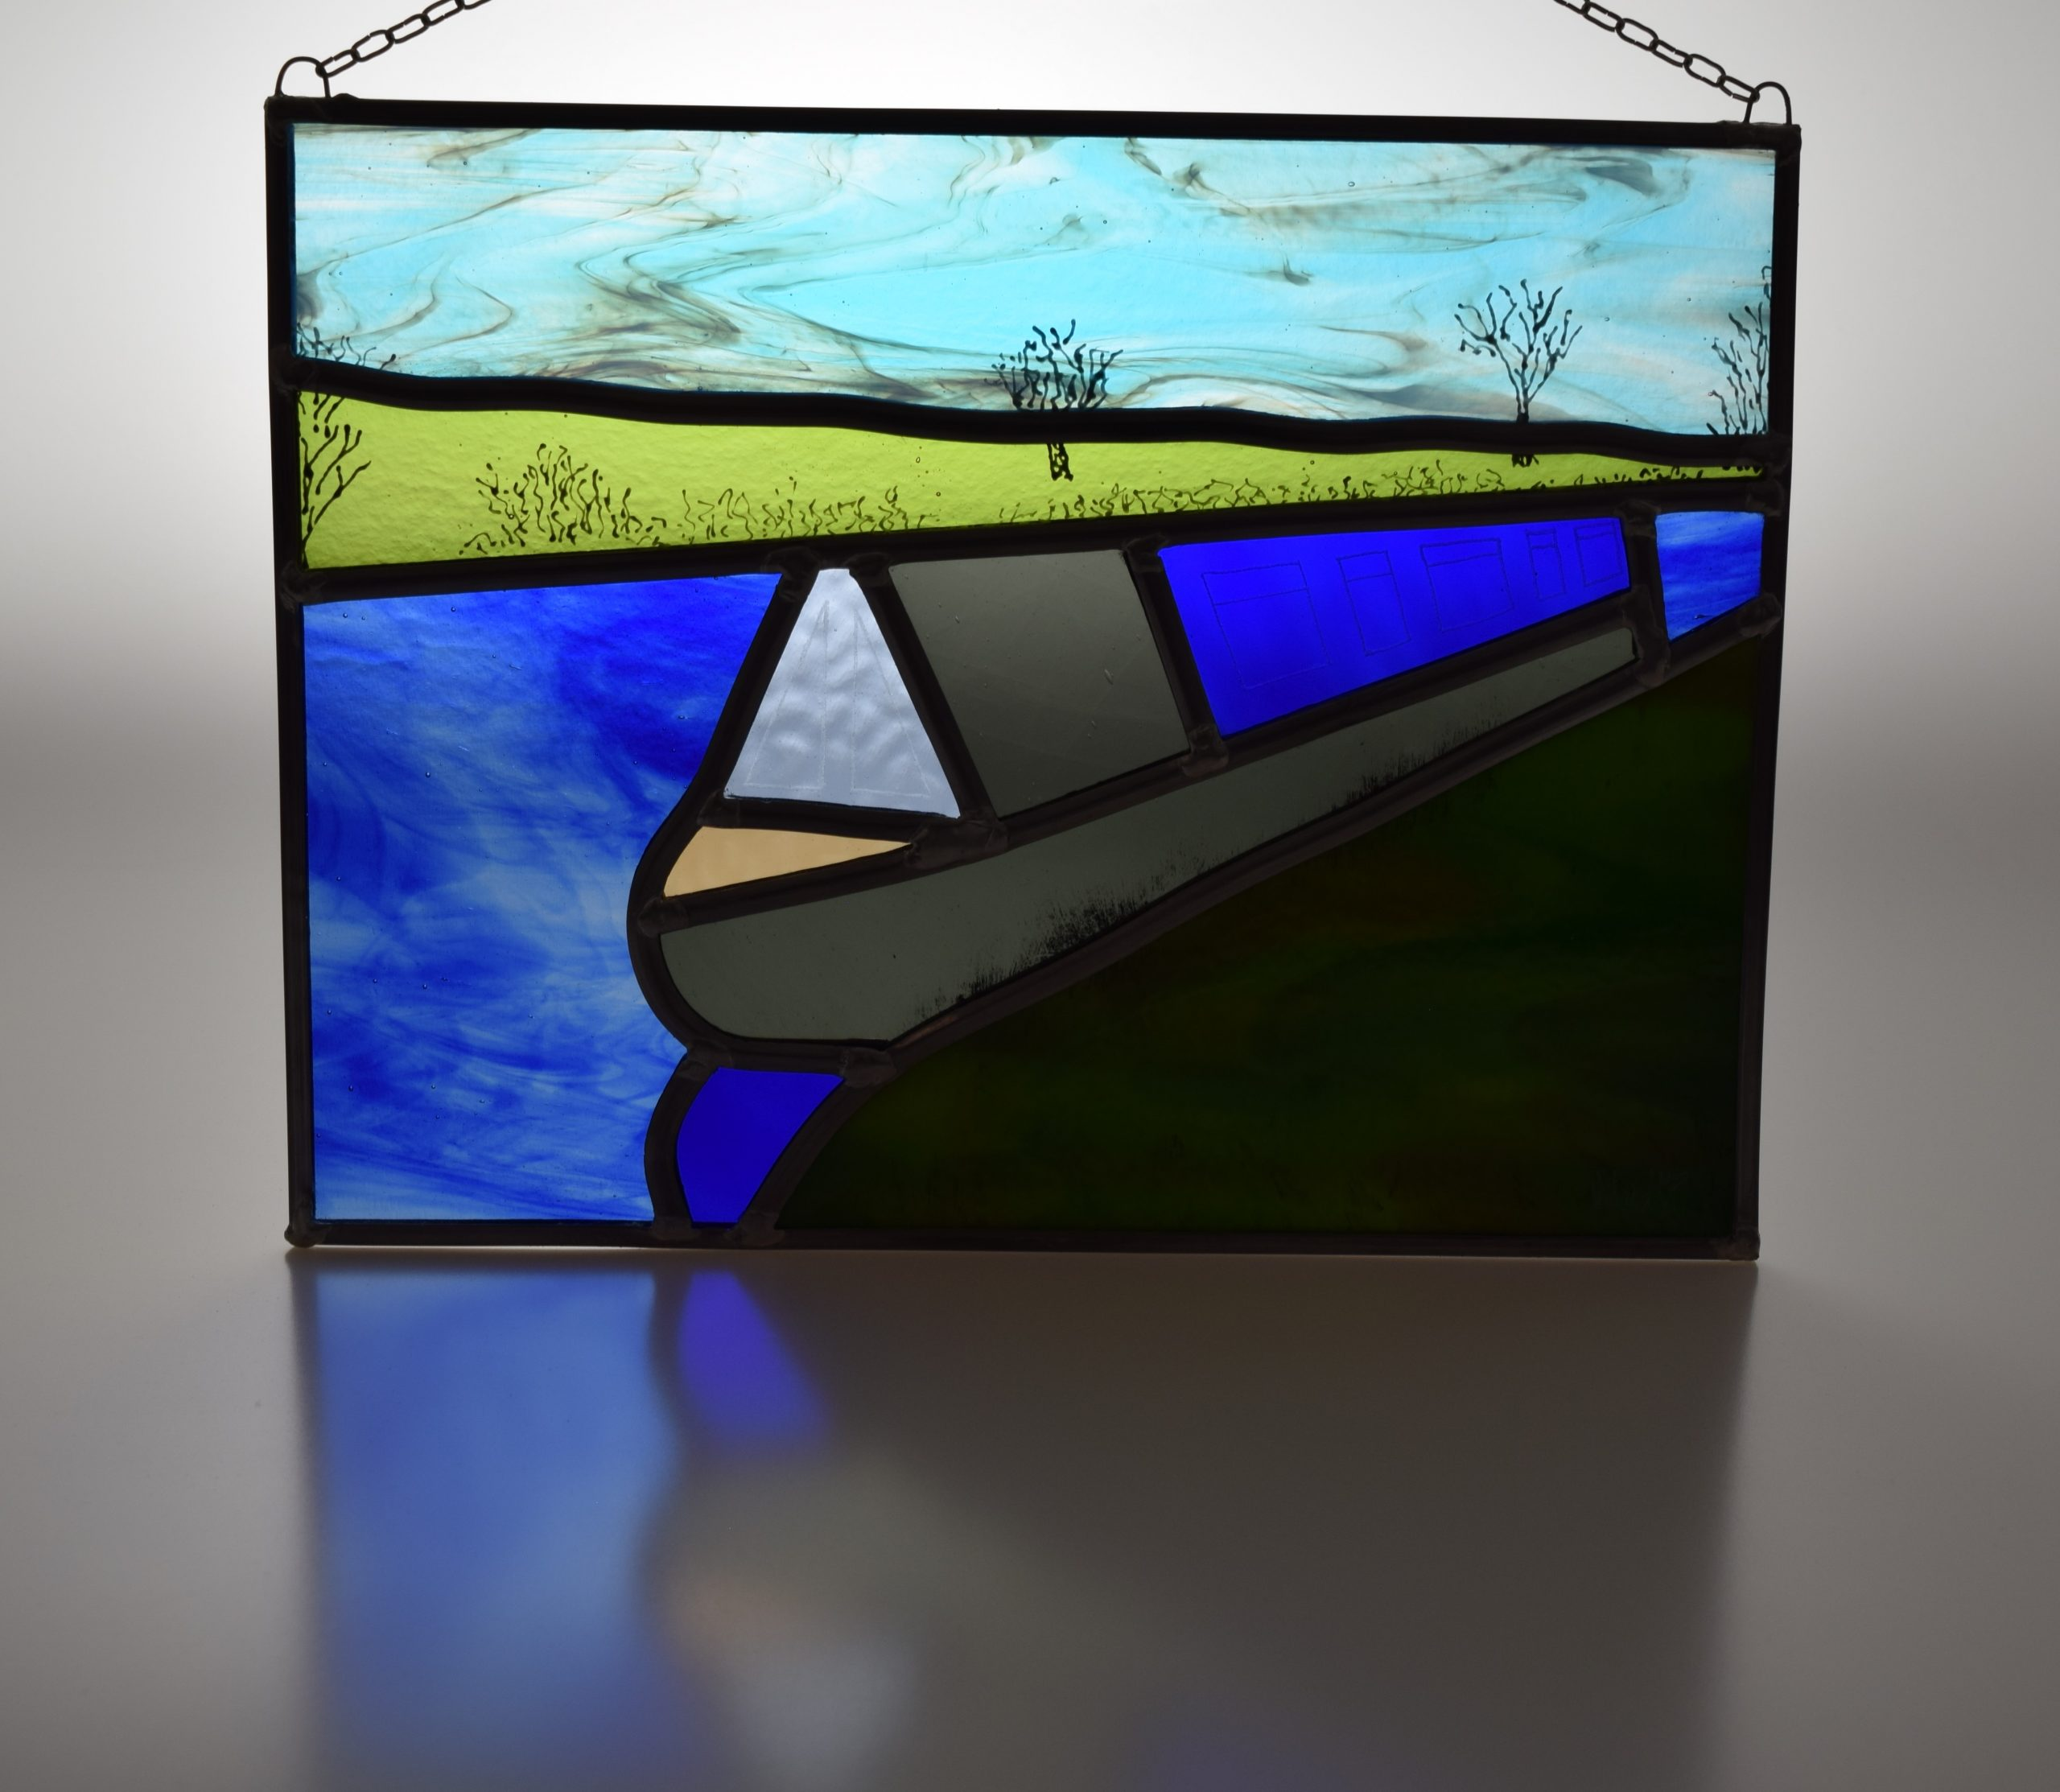 A canalboat moored on the RIver Weaver in Cheshire, captured in stained glass